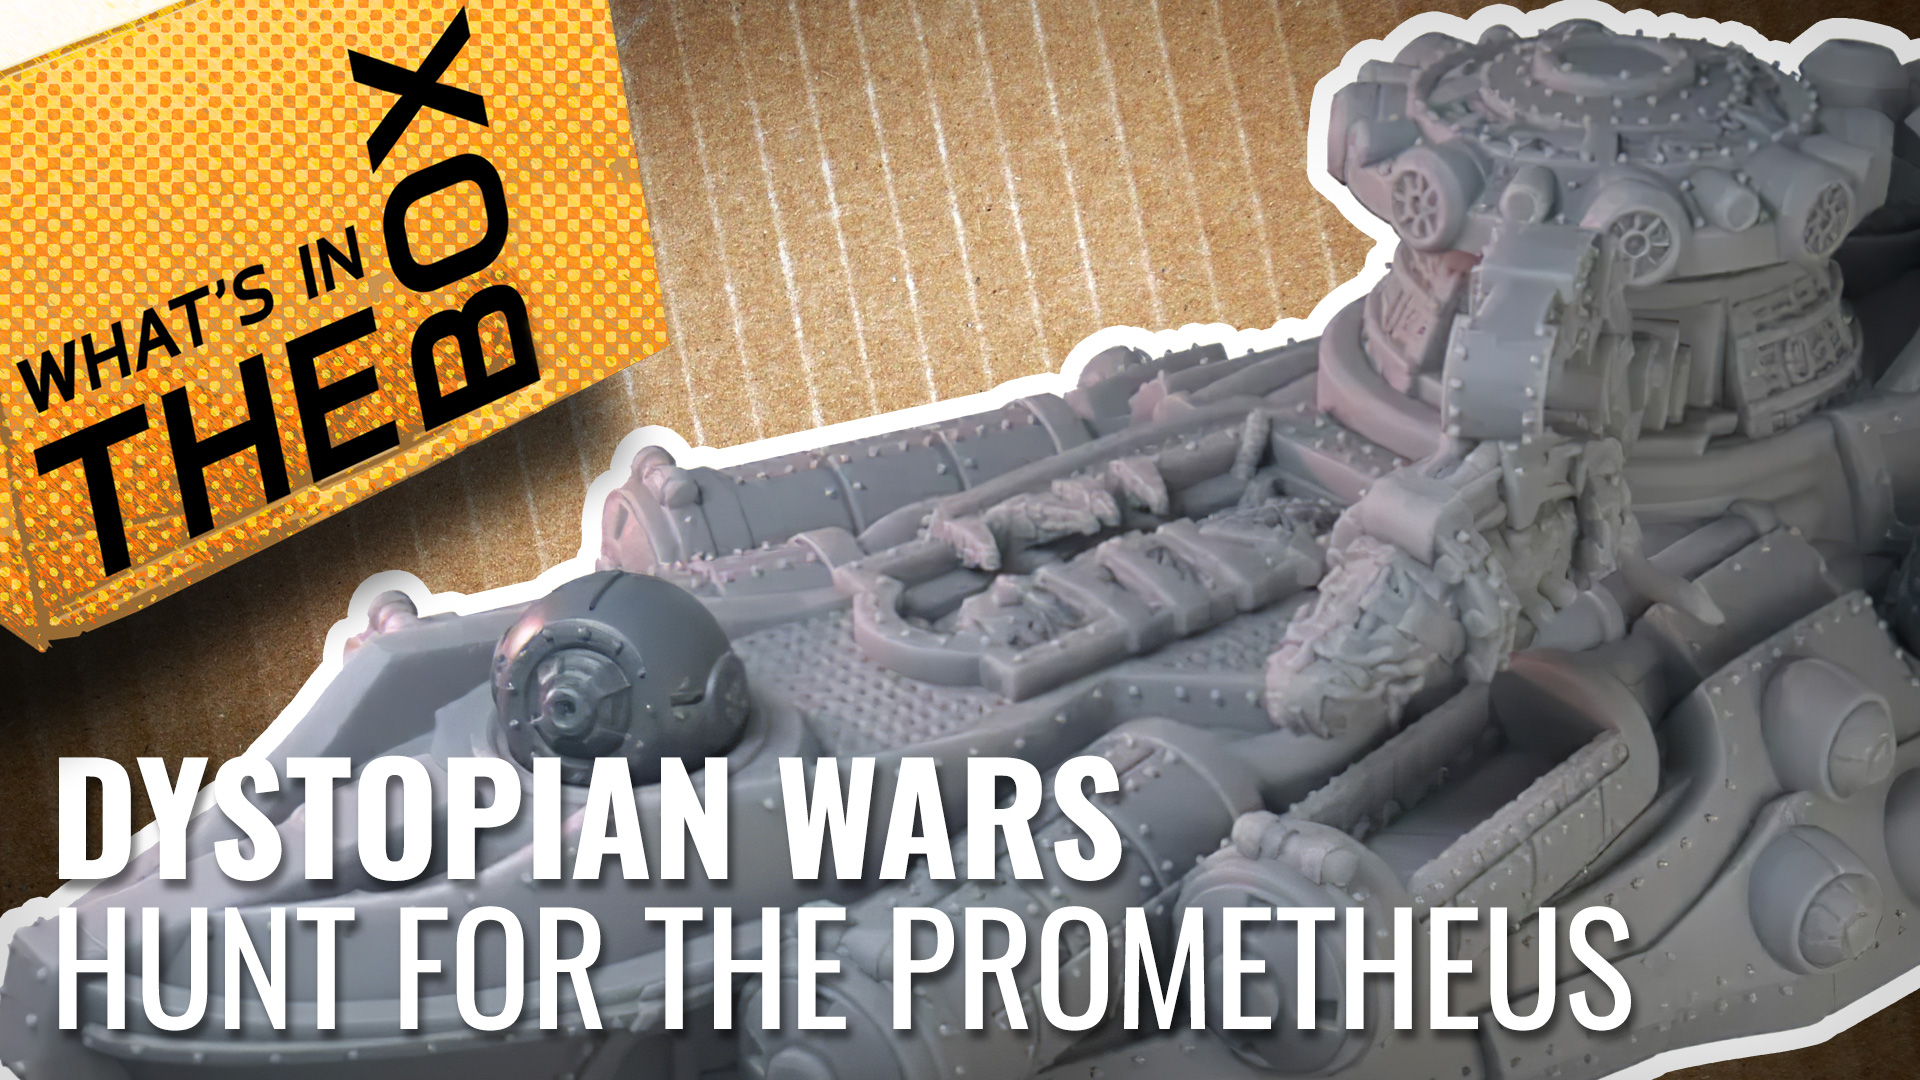 dystopian-wars-hunt-for-the-prometheus-coverimage